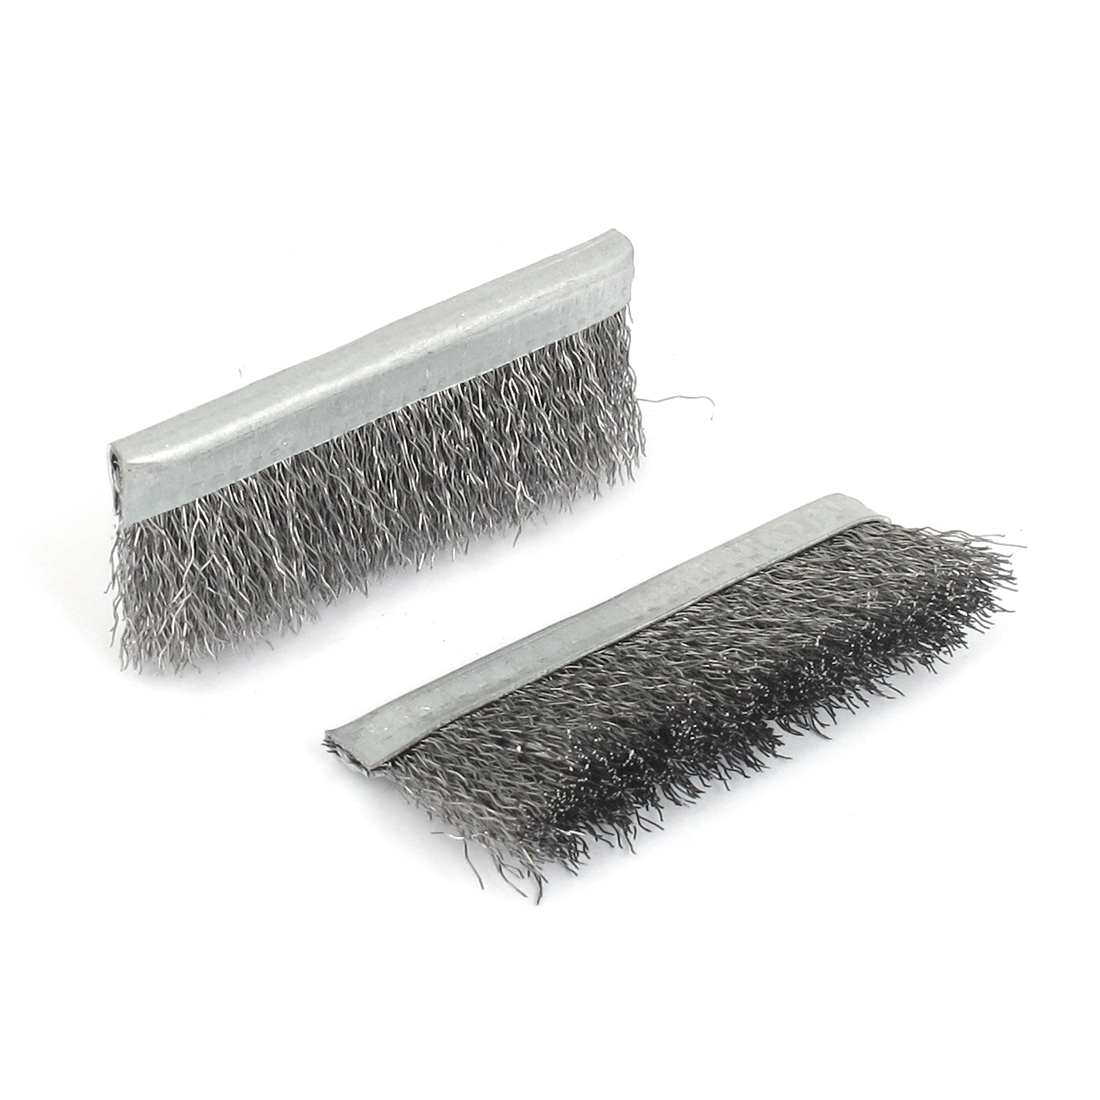 60mm Length Metal Steel Wire Cleaning Brush Handy Tool Silver Tone 2PCS